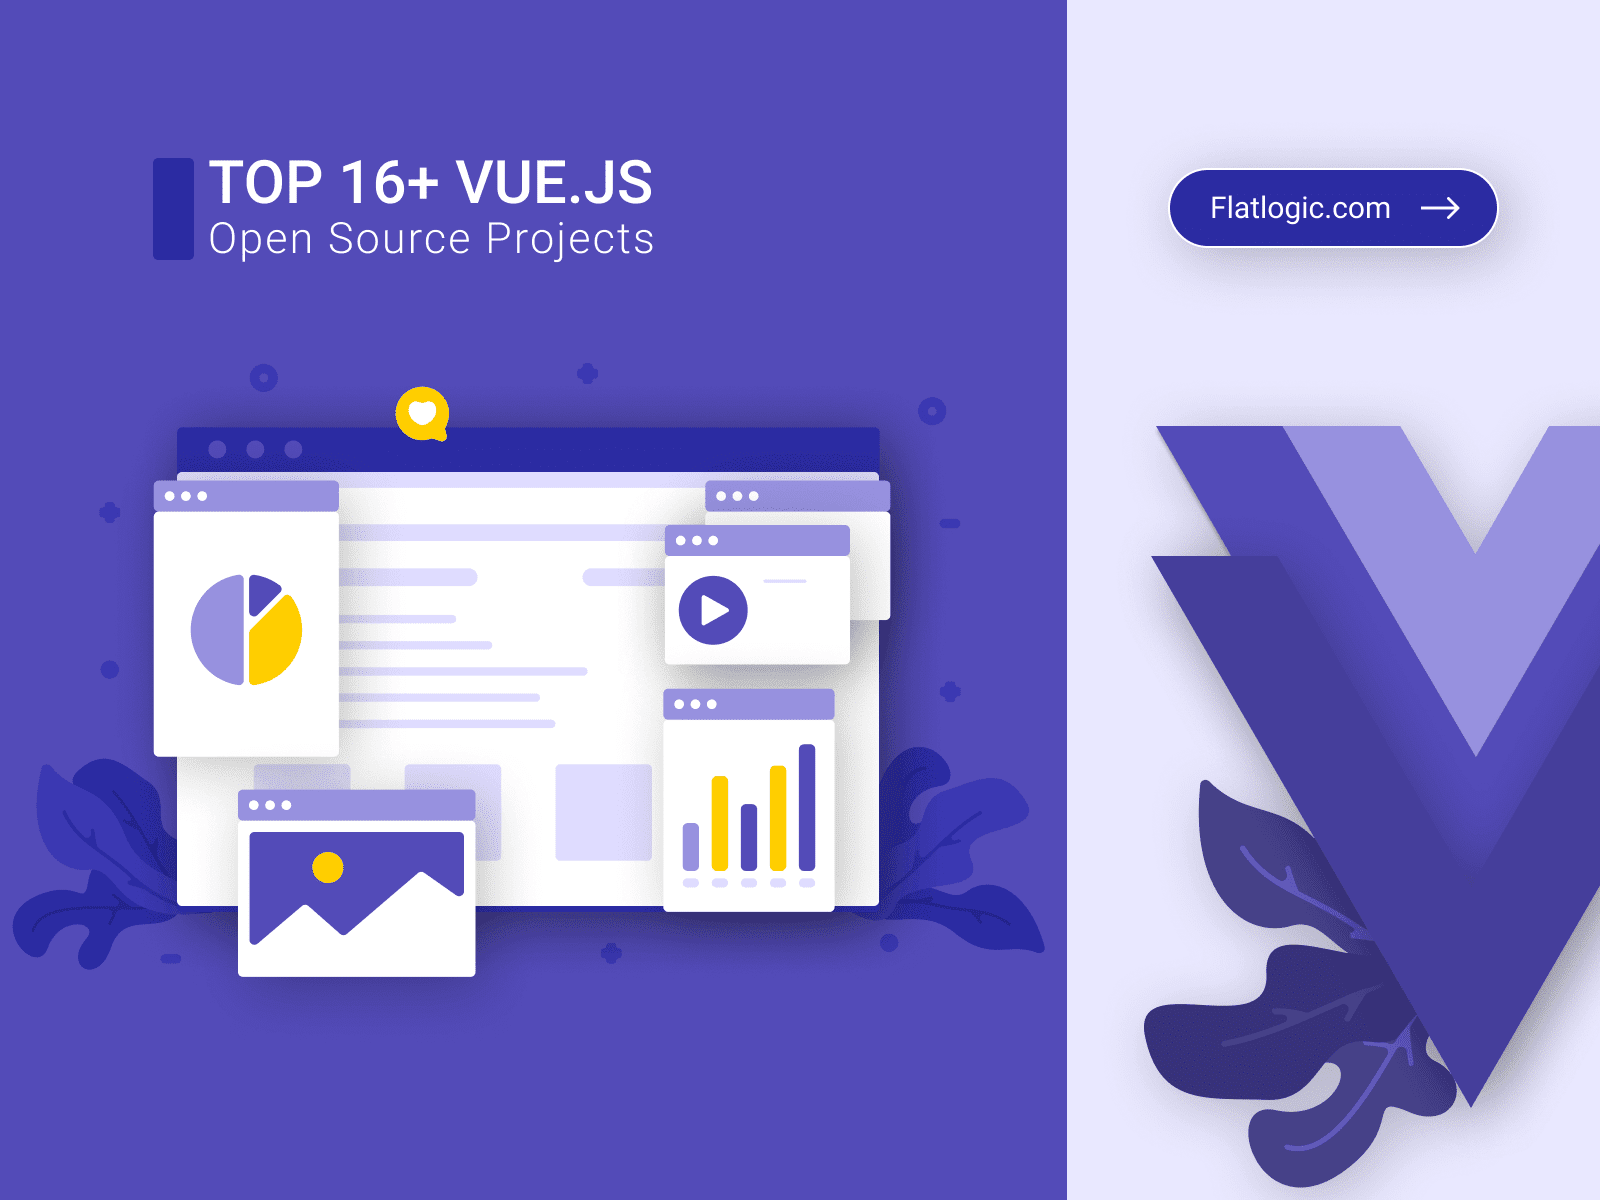 Top 16+ Vue Open Source Projects